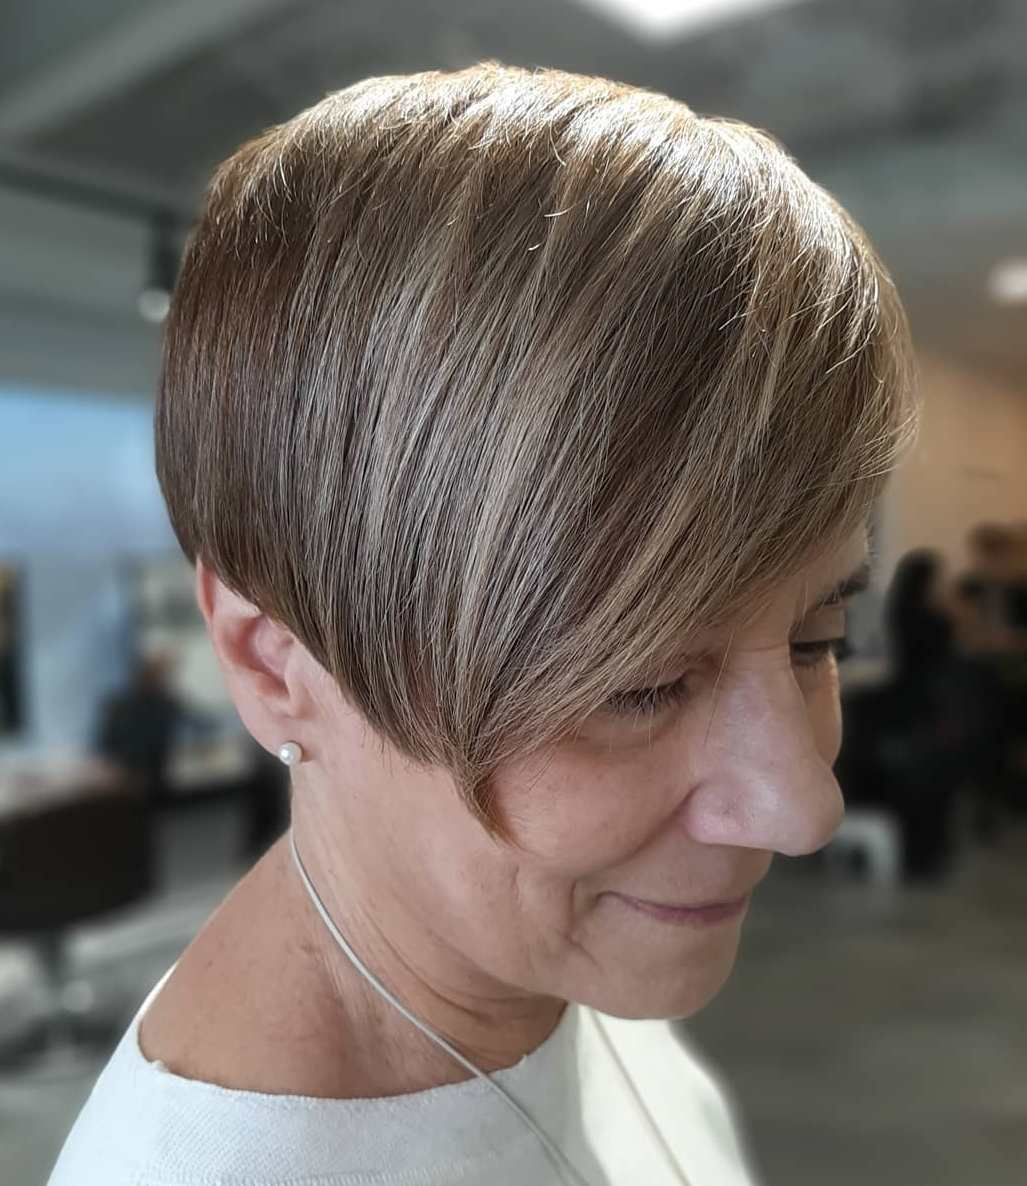 Women's Pixie with Angled Bangs